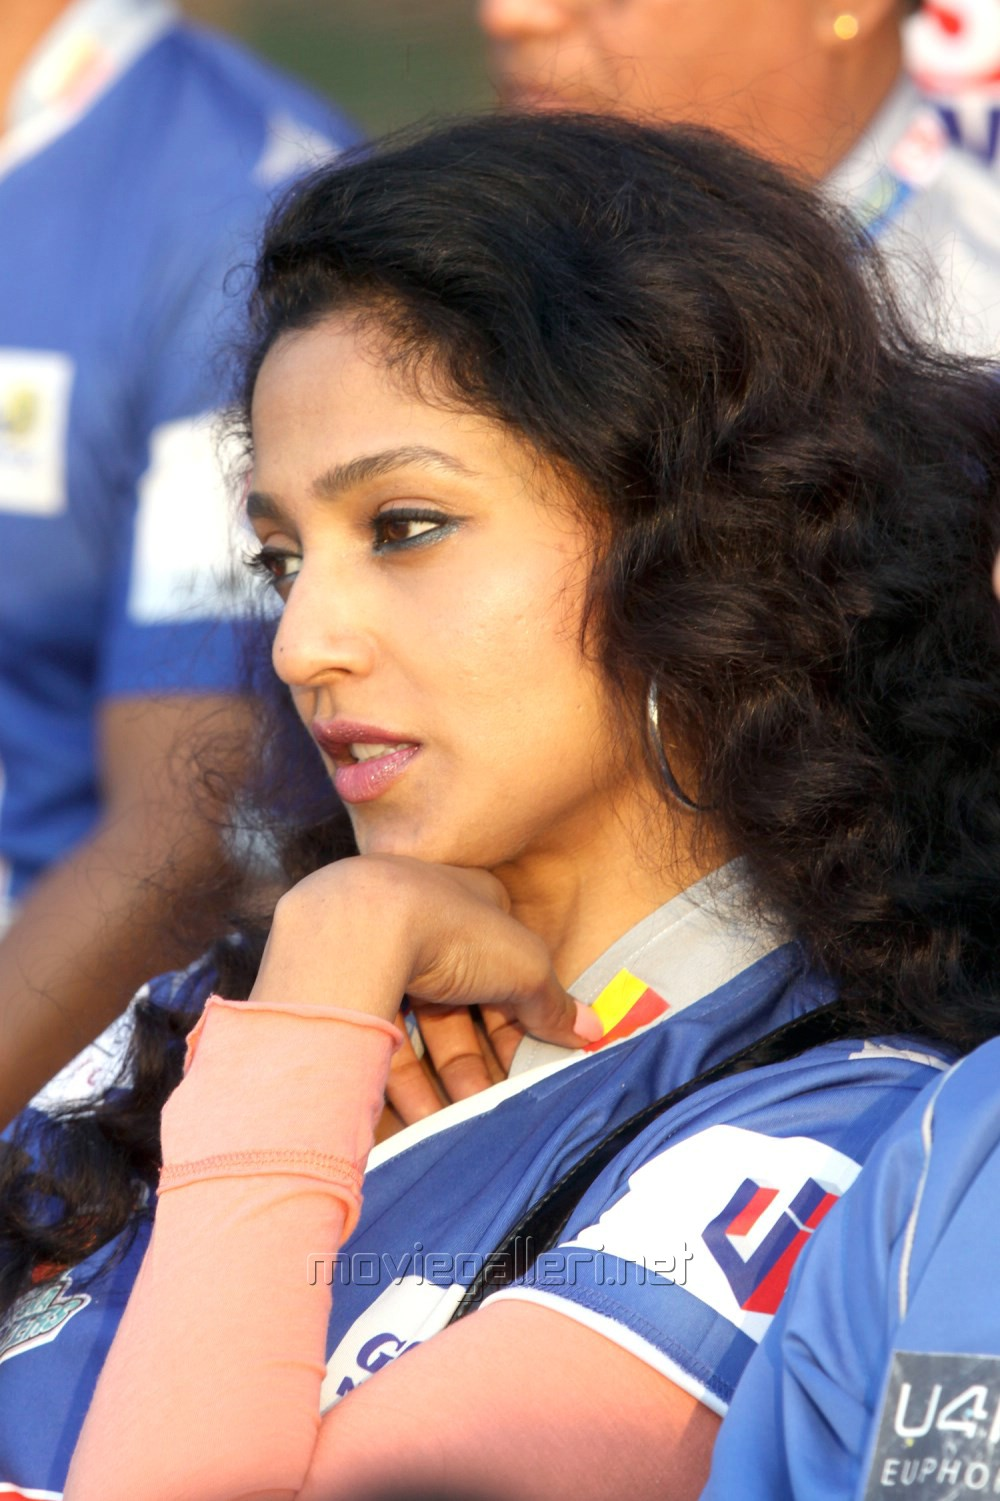 ... Amp Bhojpuri Dabbangs Ccl 4 Match At D Pictures to pin on Pinterest